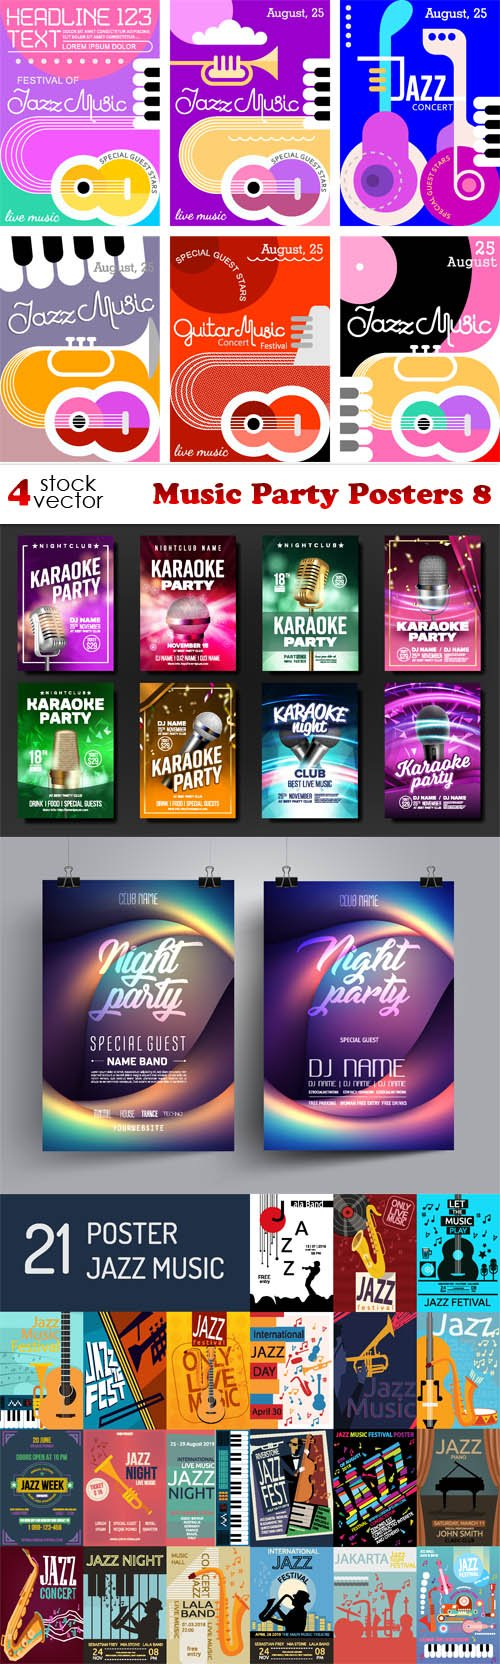 Vectors - Music Party Posters 8